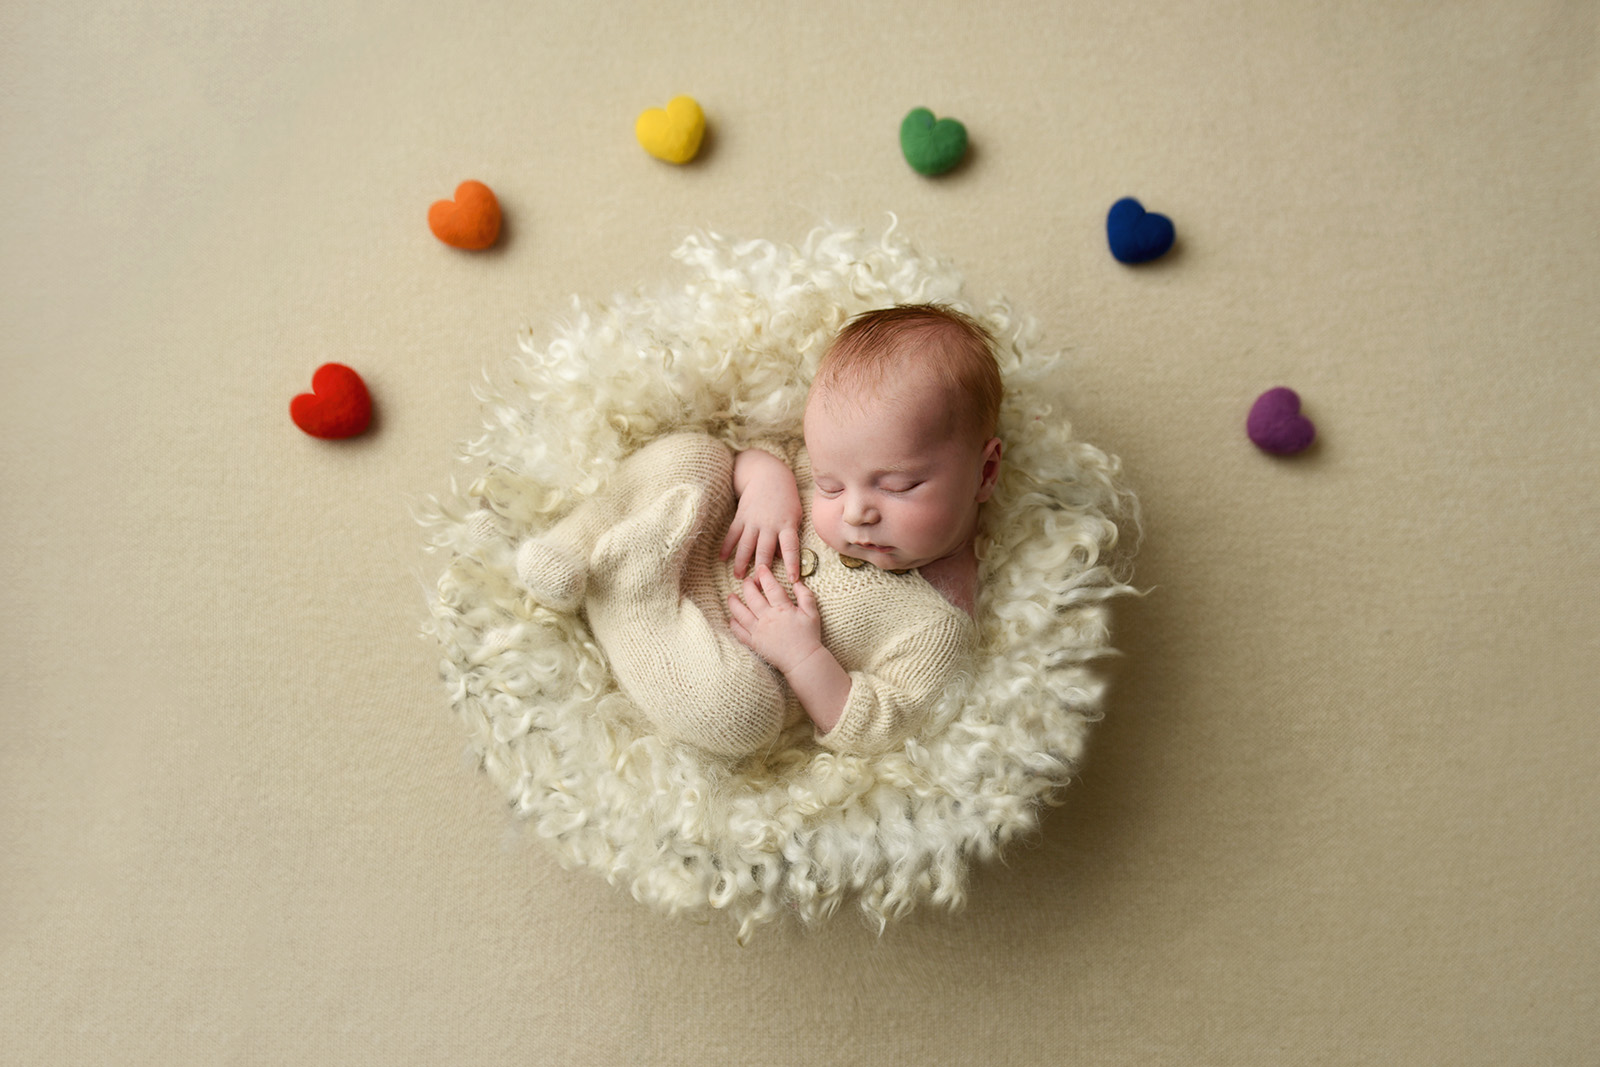 Pictures of rainbow babies, hearts over baby